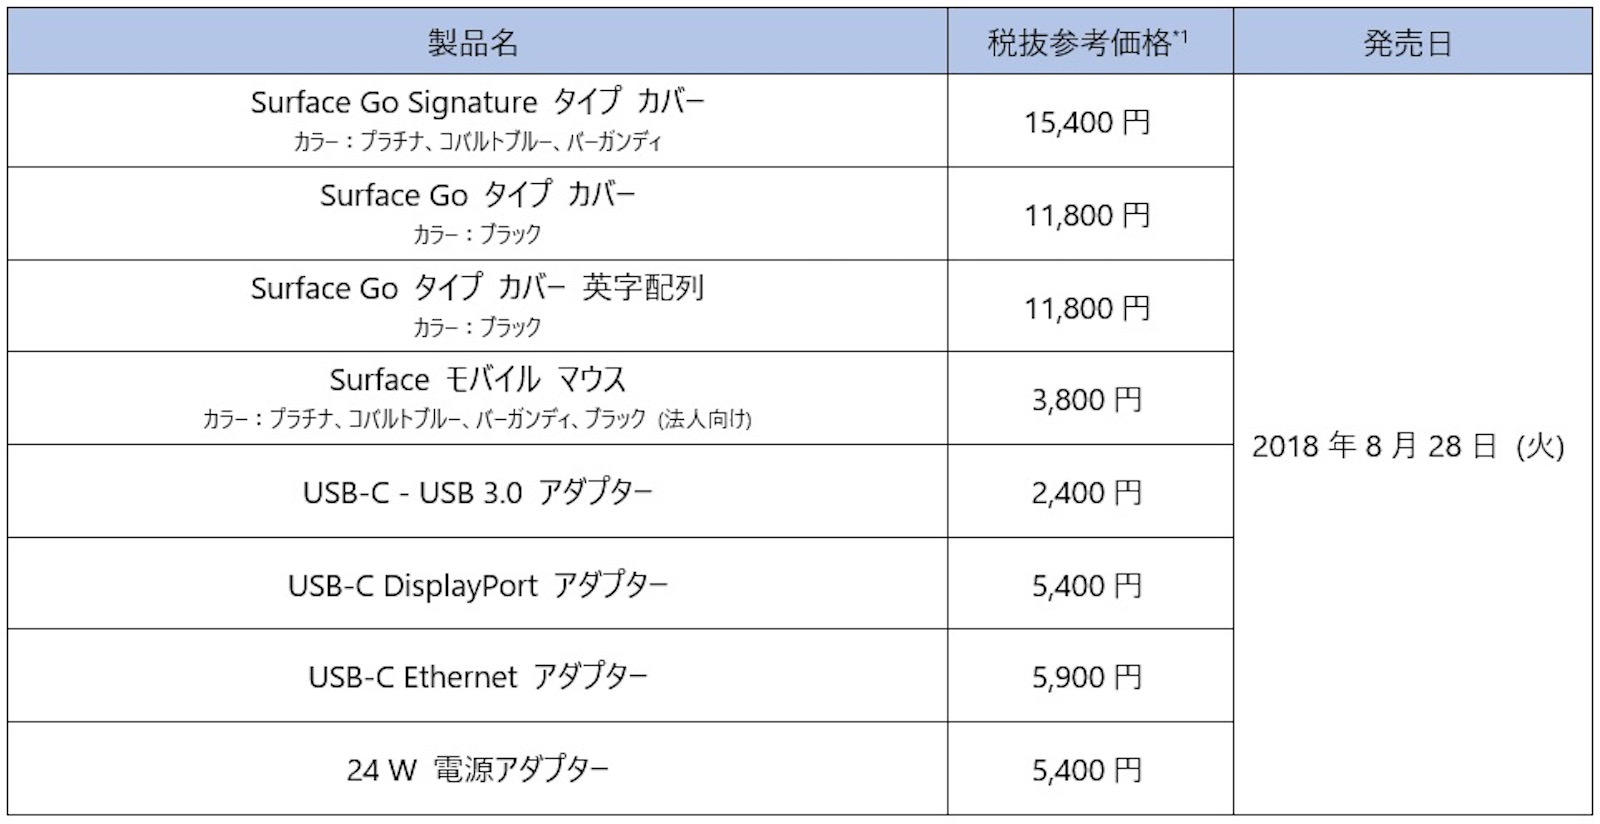 Microsoft-Surface-Go-Japan-Release-3.jpg